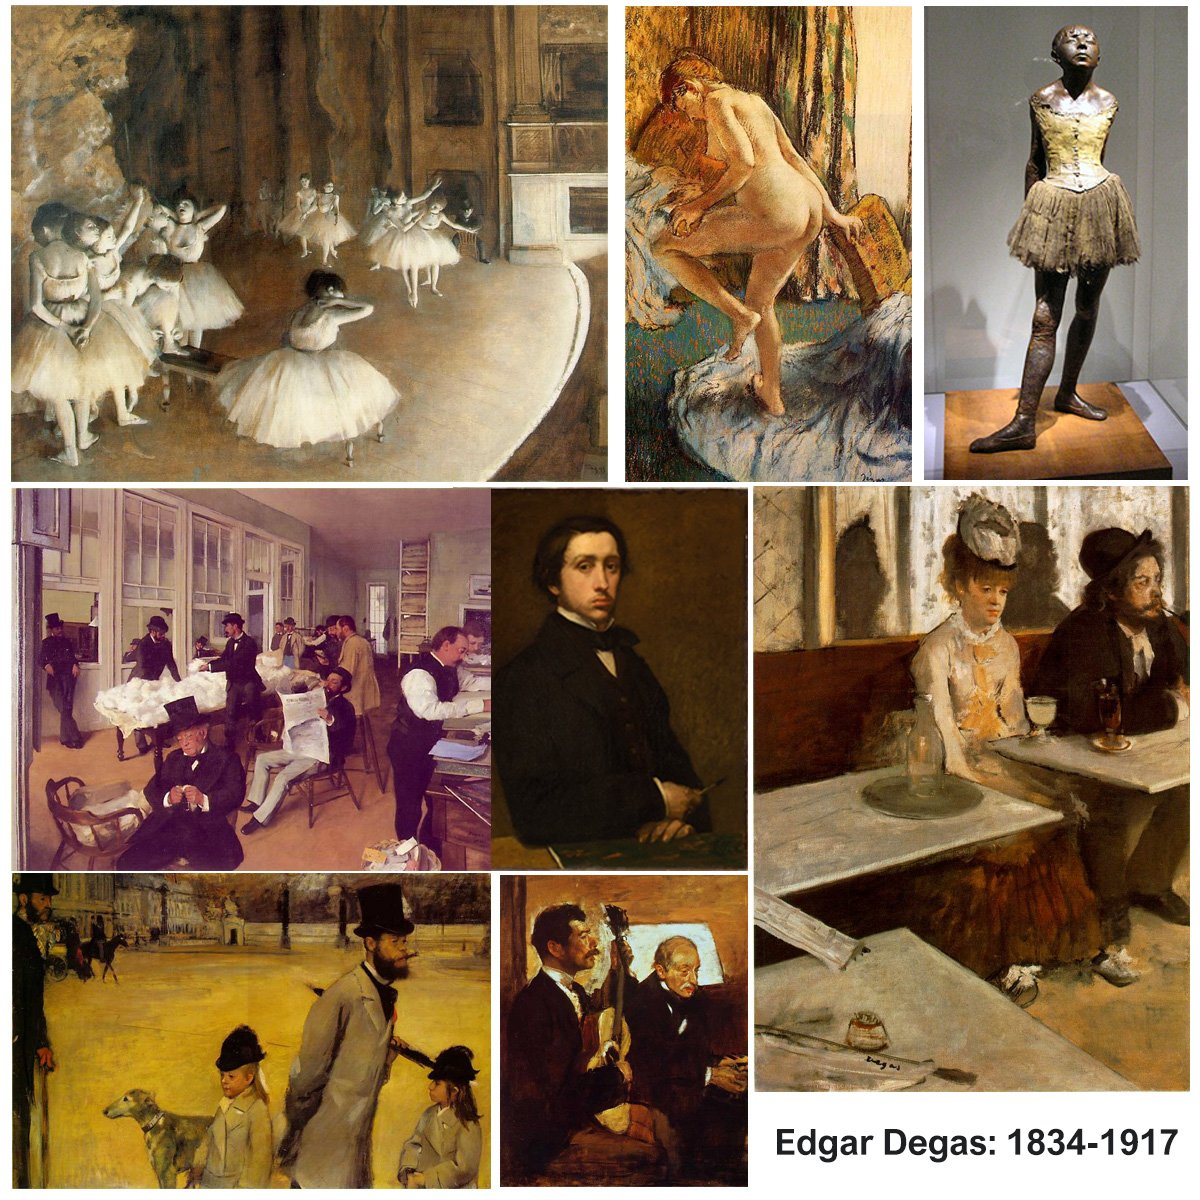 Happy Birthday #EdgarDegas,1834-1917 - learn about one of the  founders of #Impressionism. https://t.co/mMCsVTffEU https://t.co/vFytpa3lX1